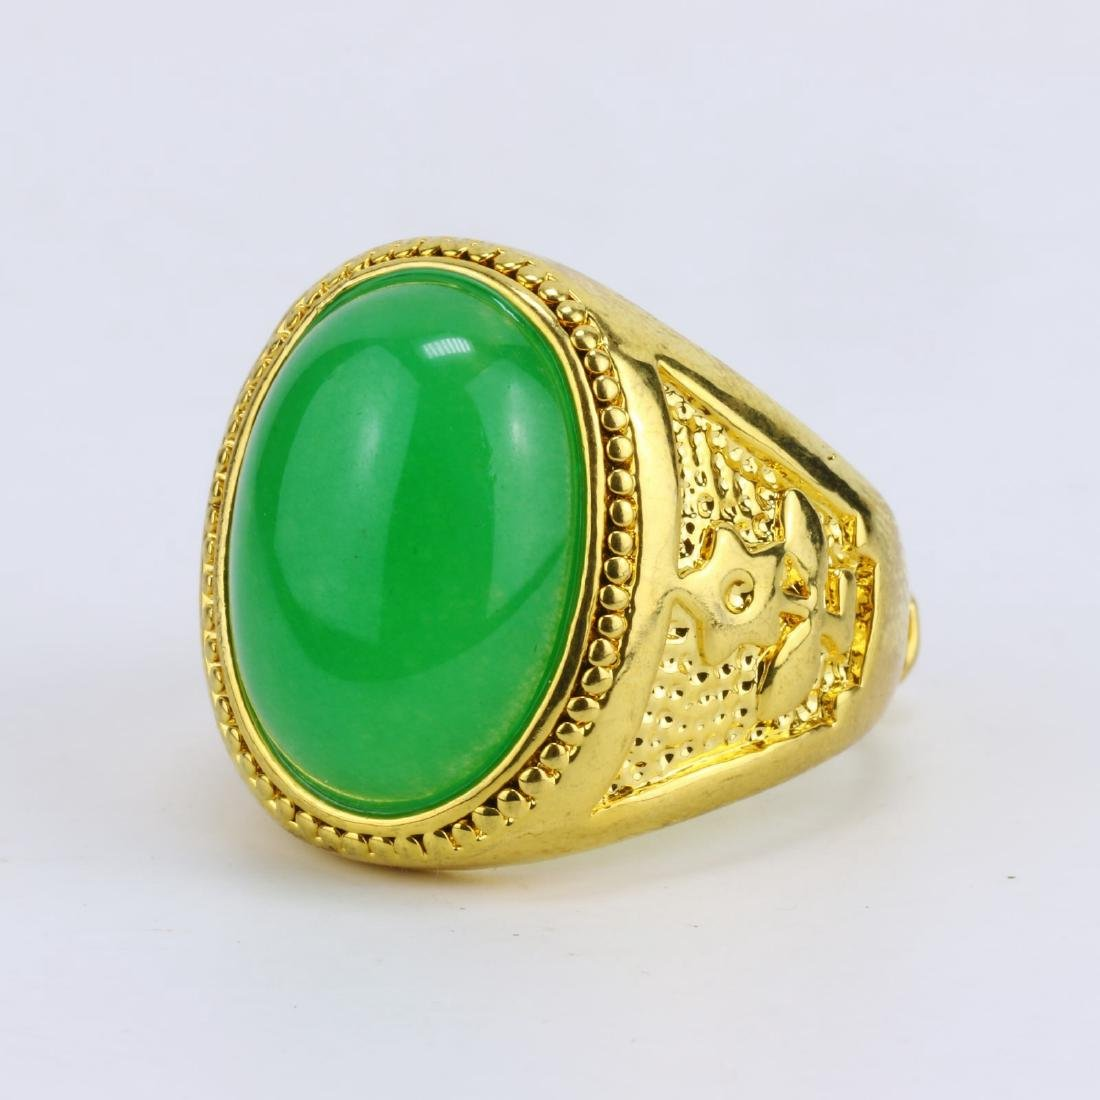 A GREEN JADE OR JADEITE MEN'S RING